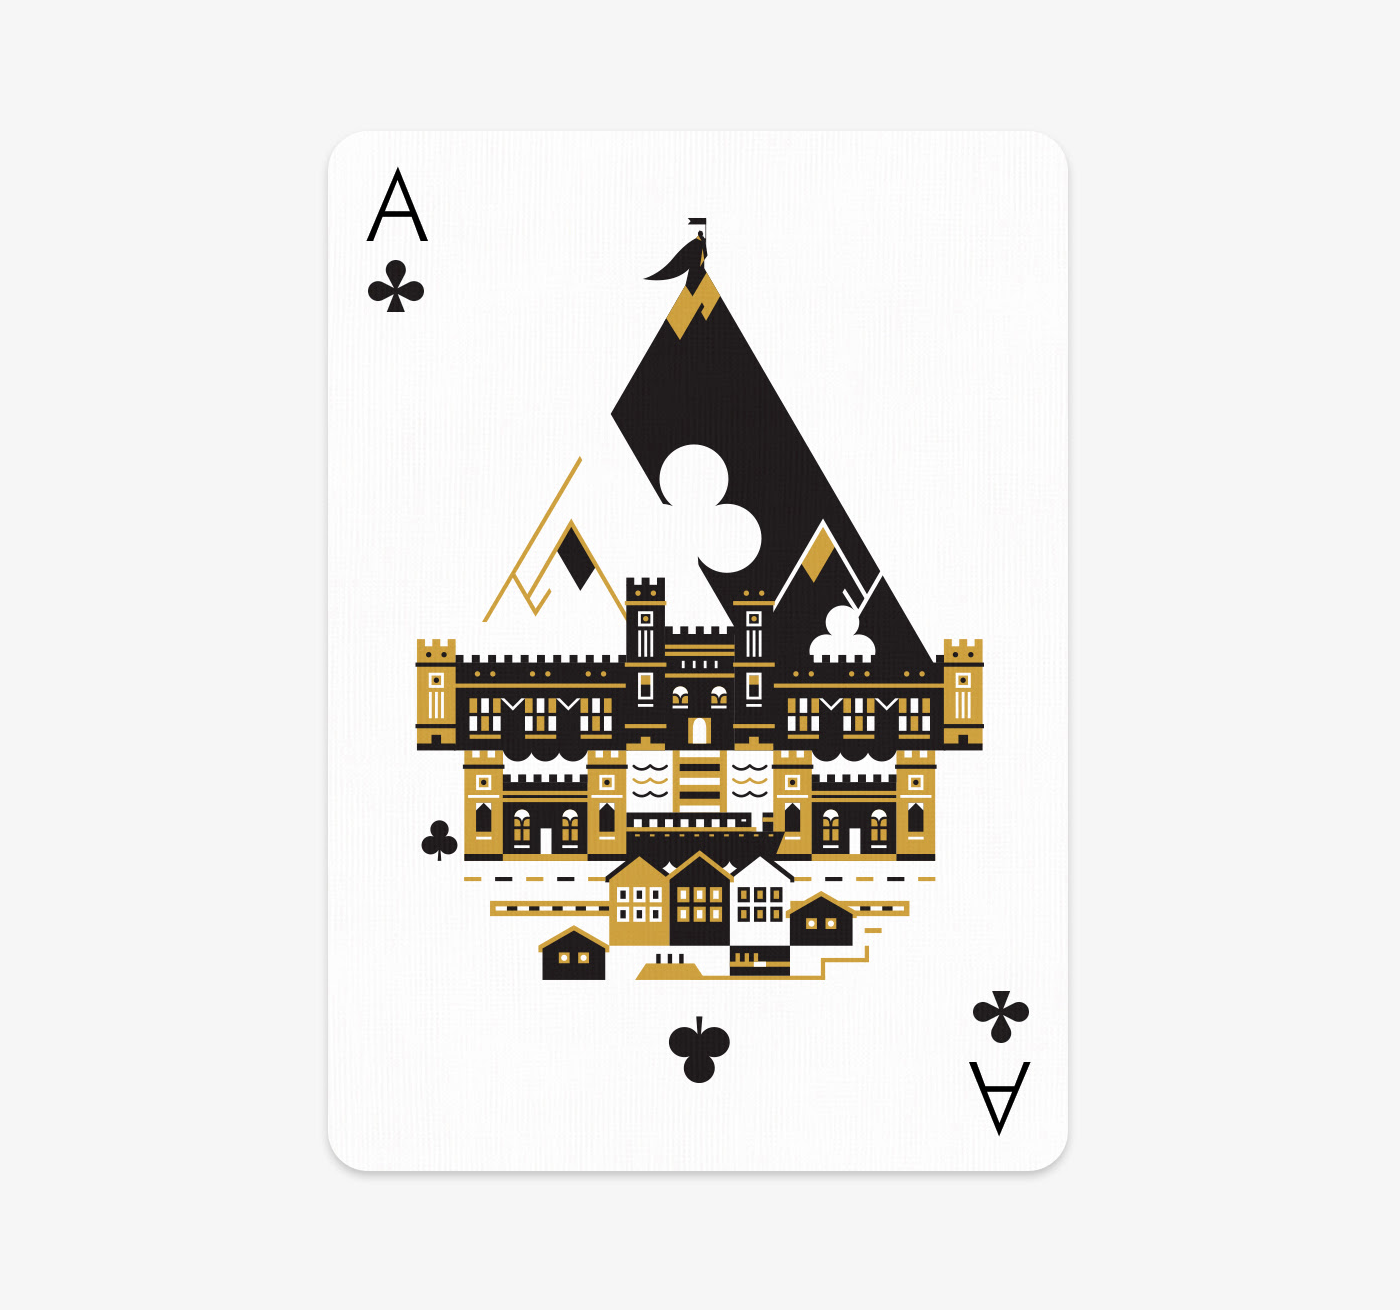 playingarts_behance2